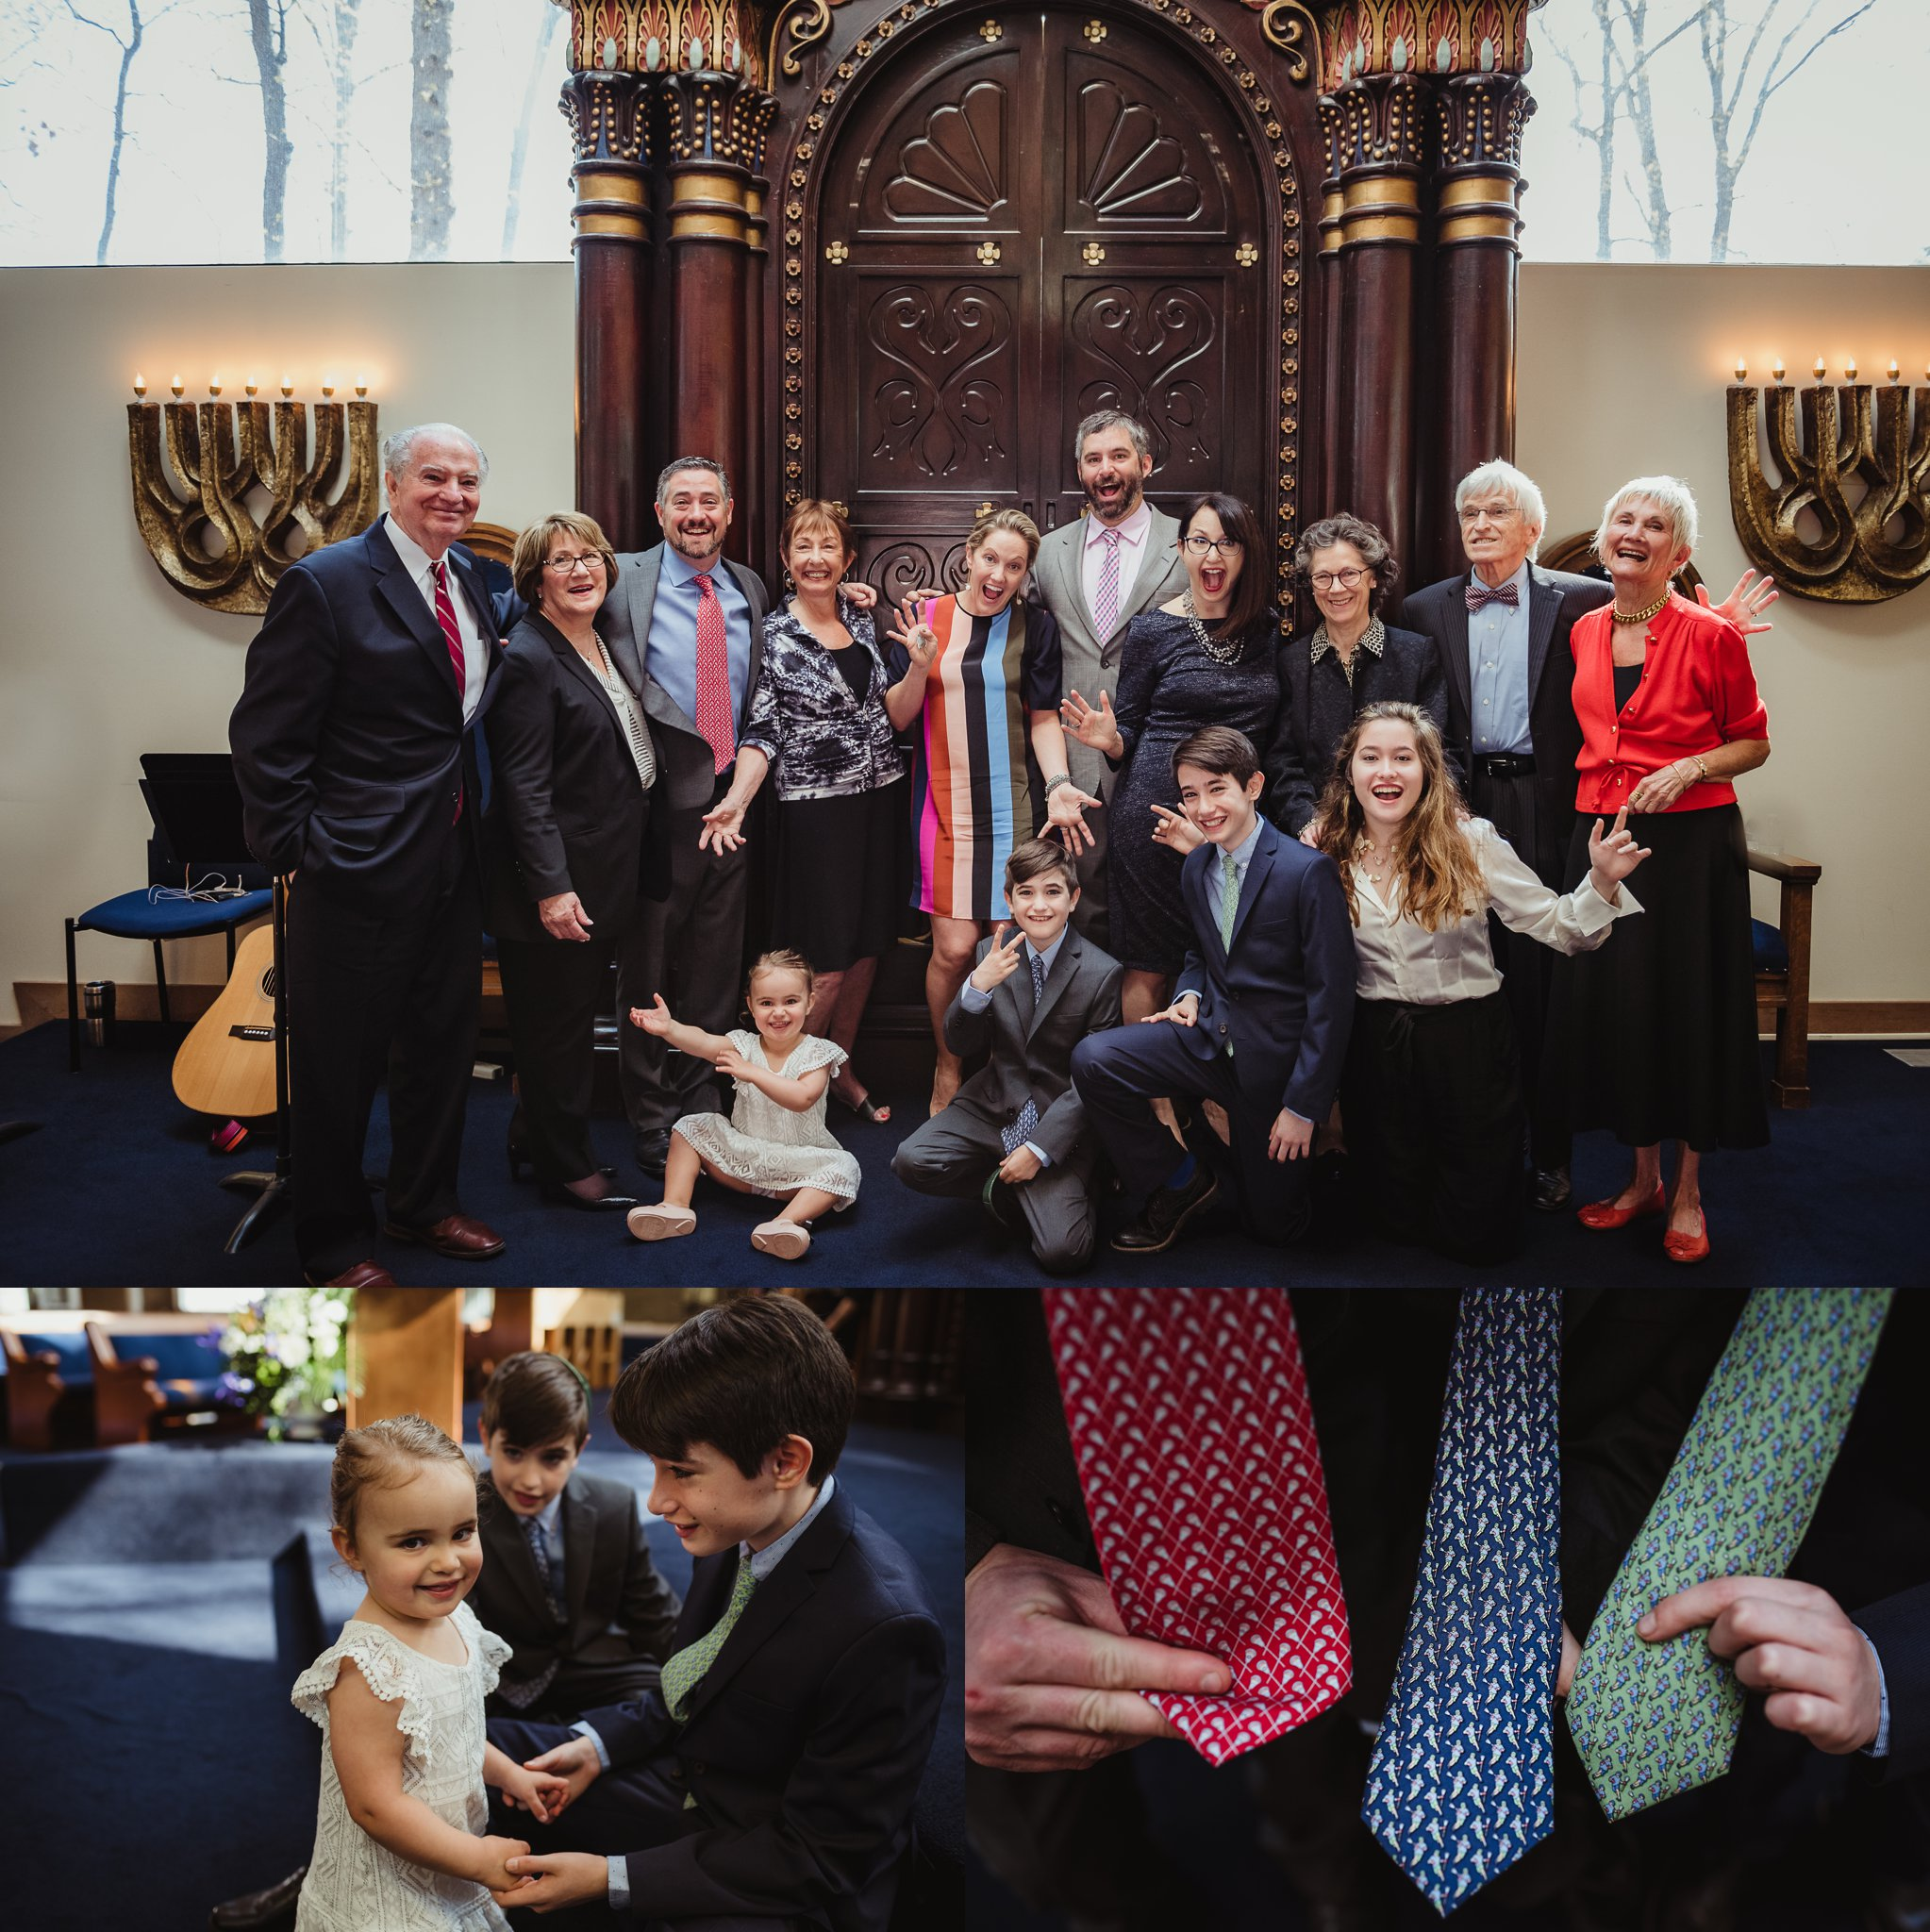 The mitzvah boy posed on the bema with his family for pictures with Rose Trail Images and showed off their lacrosse ties at Temple Beth Or in Raleigh, North Carolina.